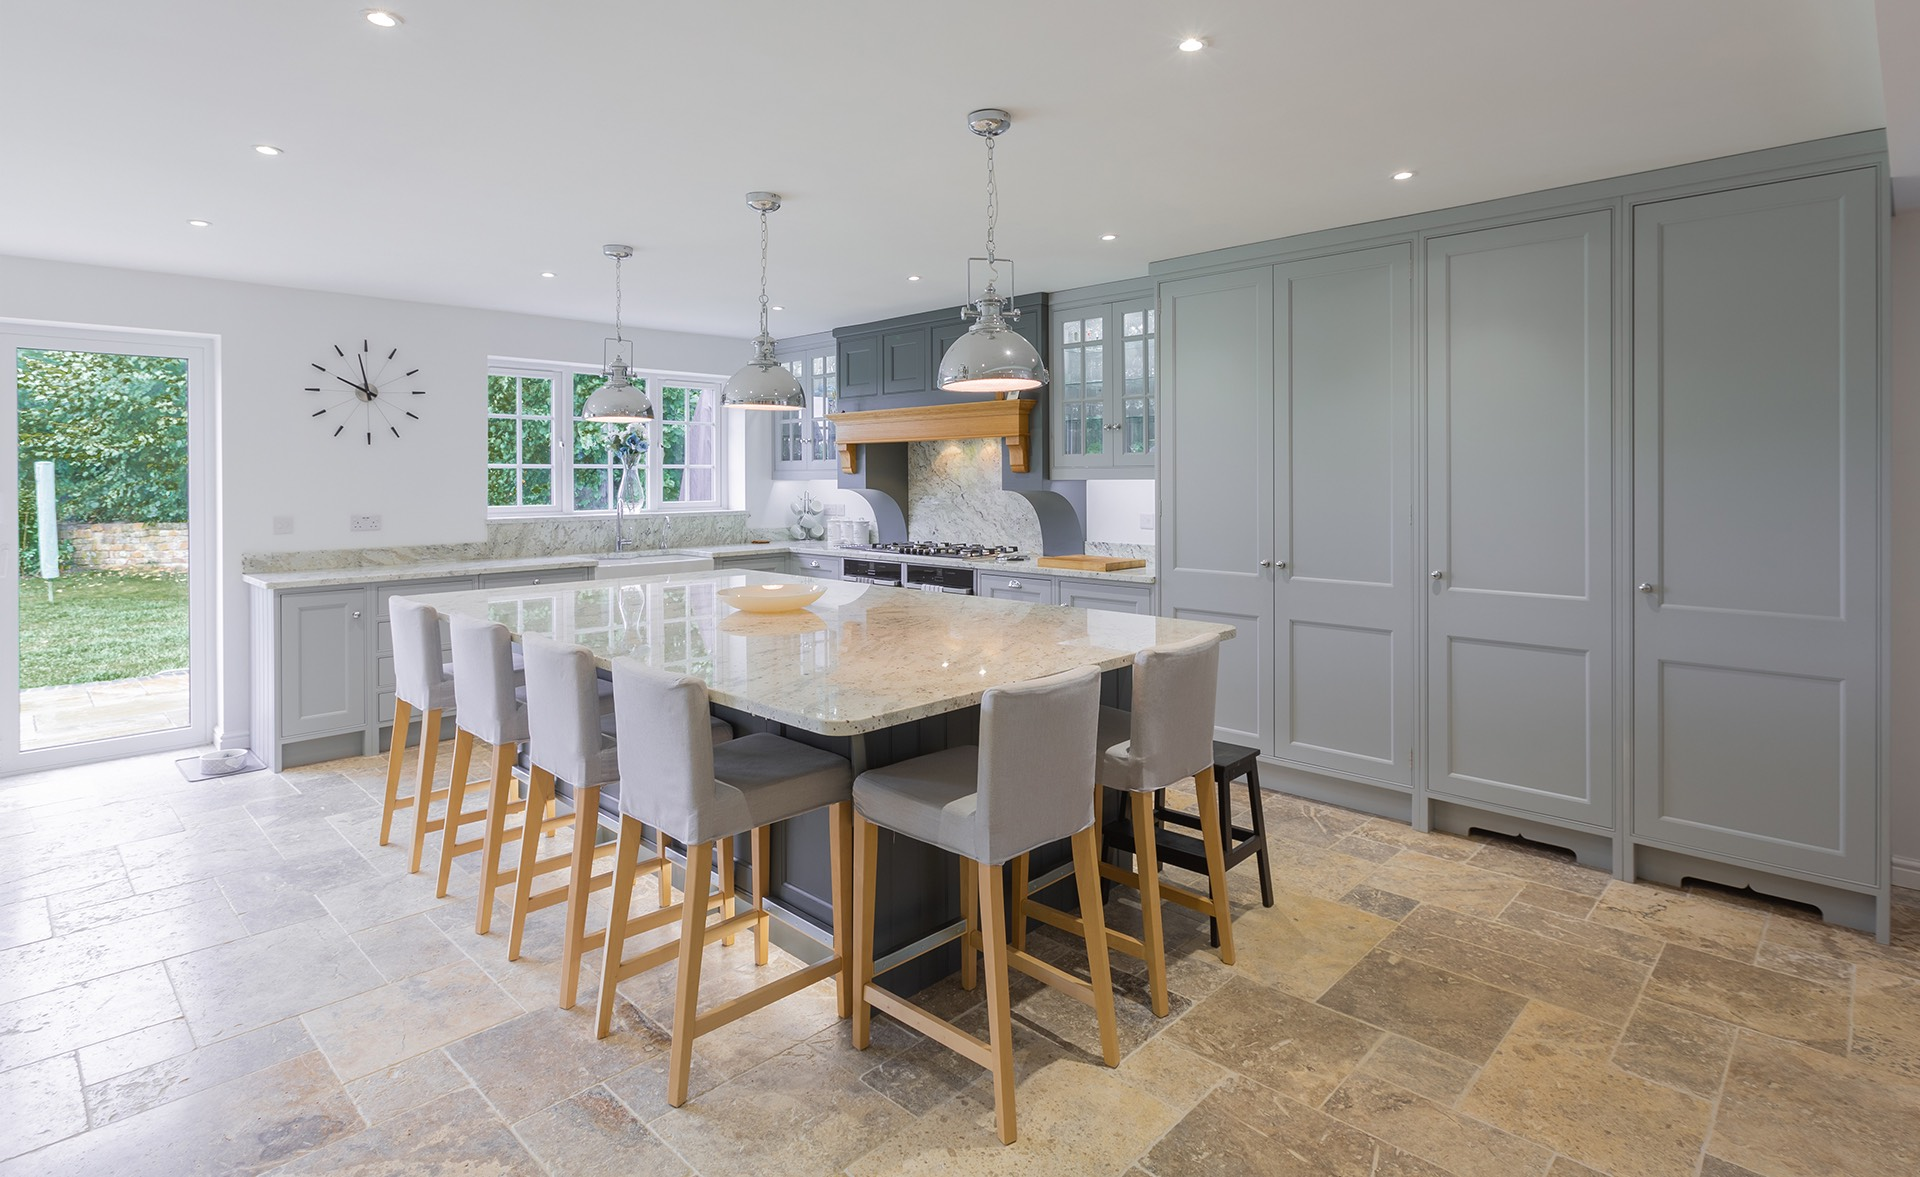 Modern hand built kitchen with wooden cupboards, granite island and chairs with tiled flooring